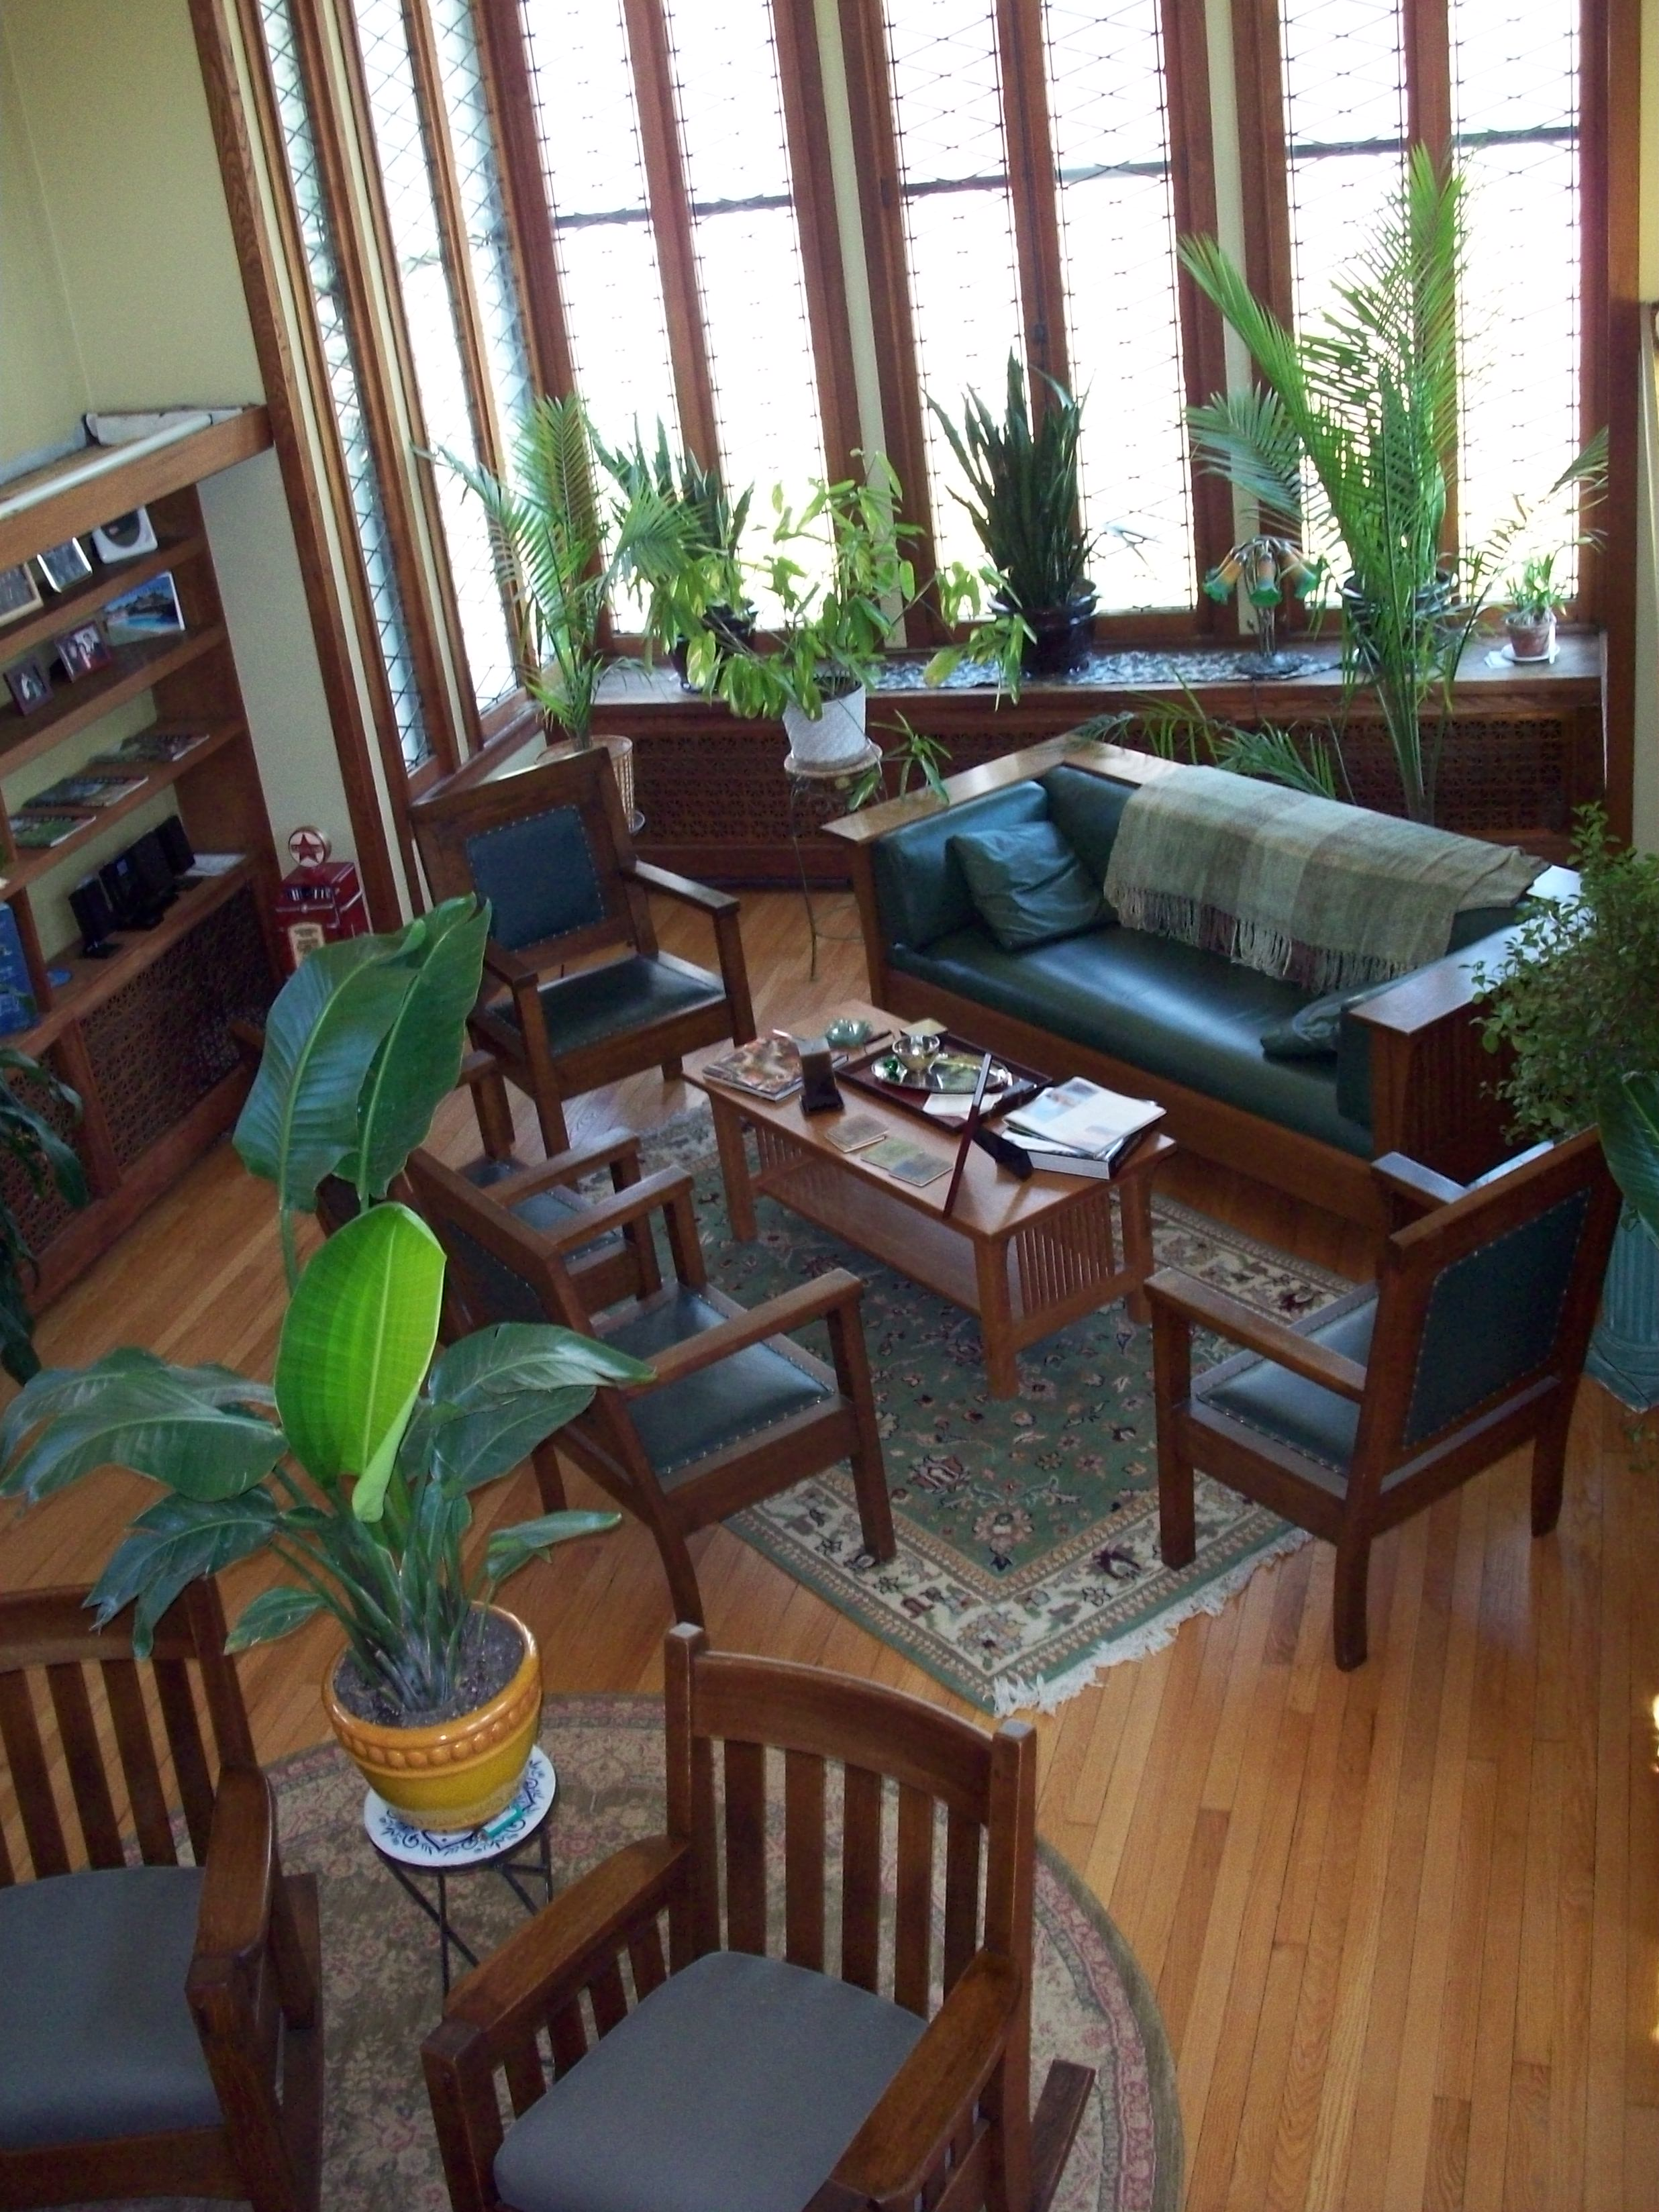 File:Walter V. Davidson House inside living room.JPG